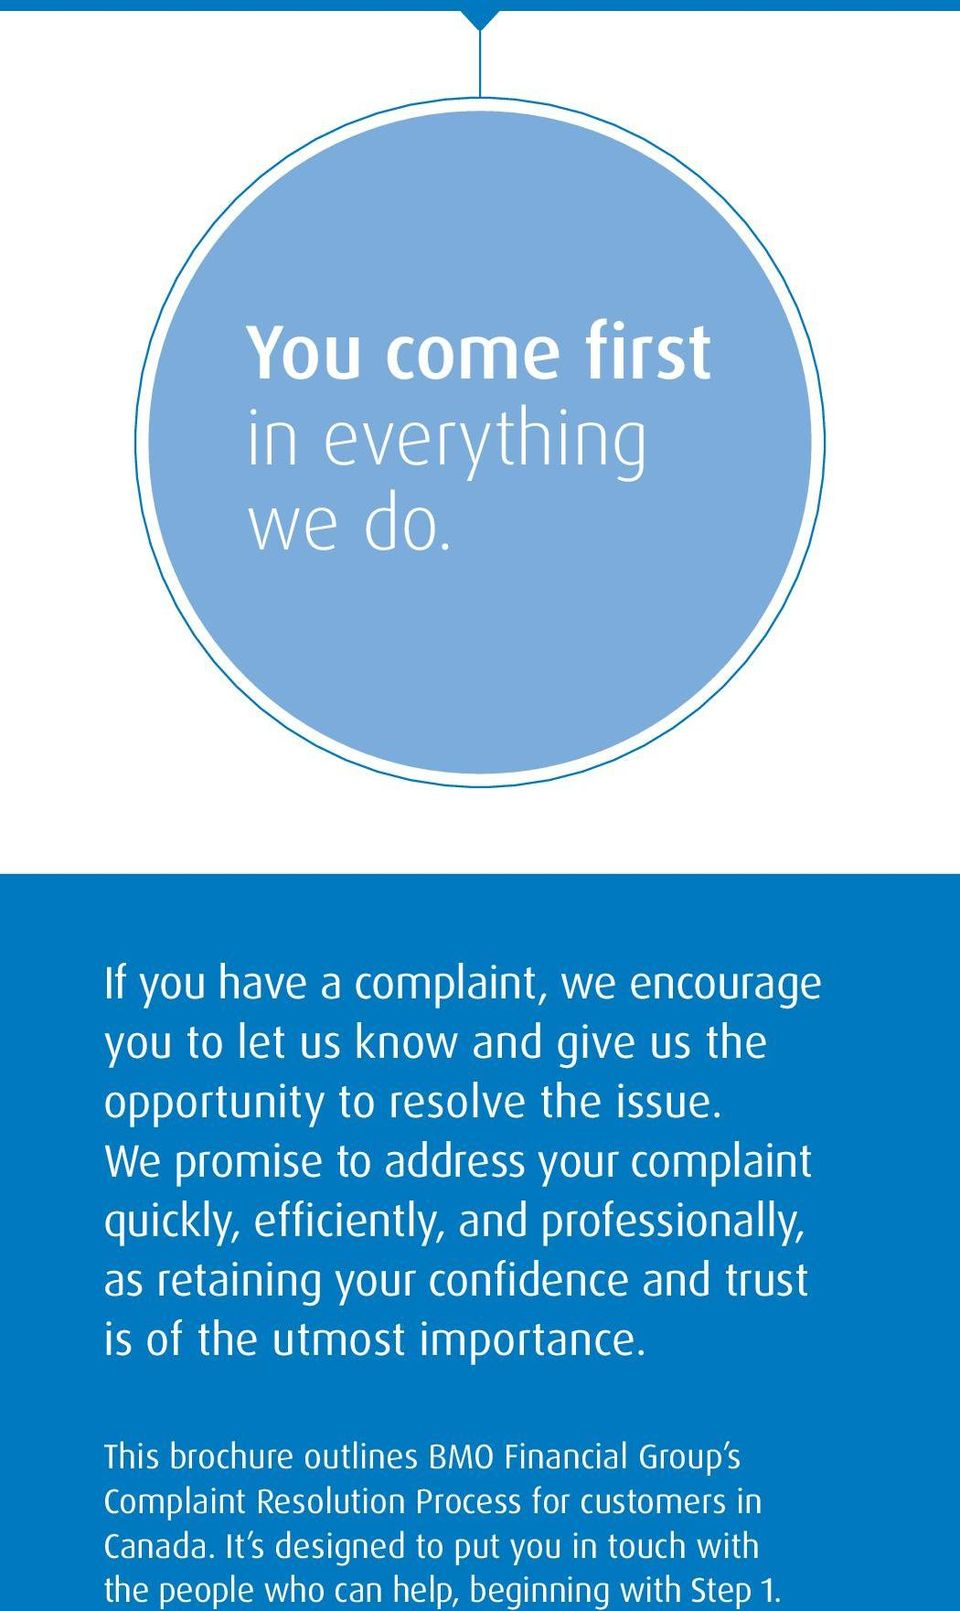 We promise to address your complaint quickly, efficiently, and professionally, as retaining your confidence and trust